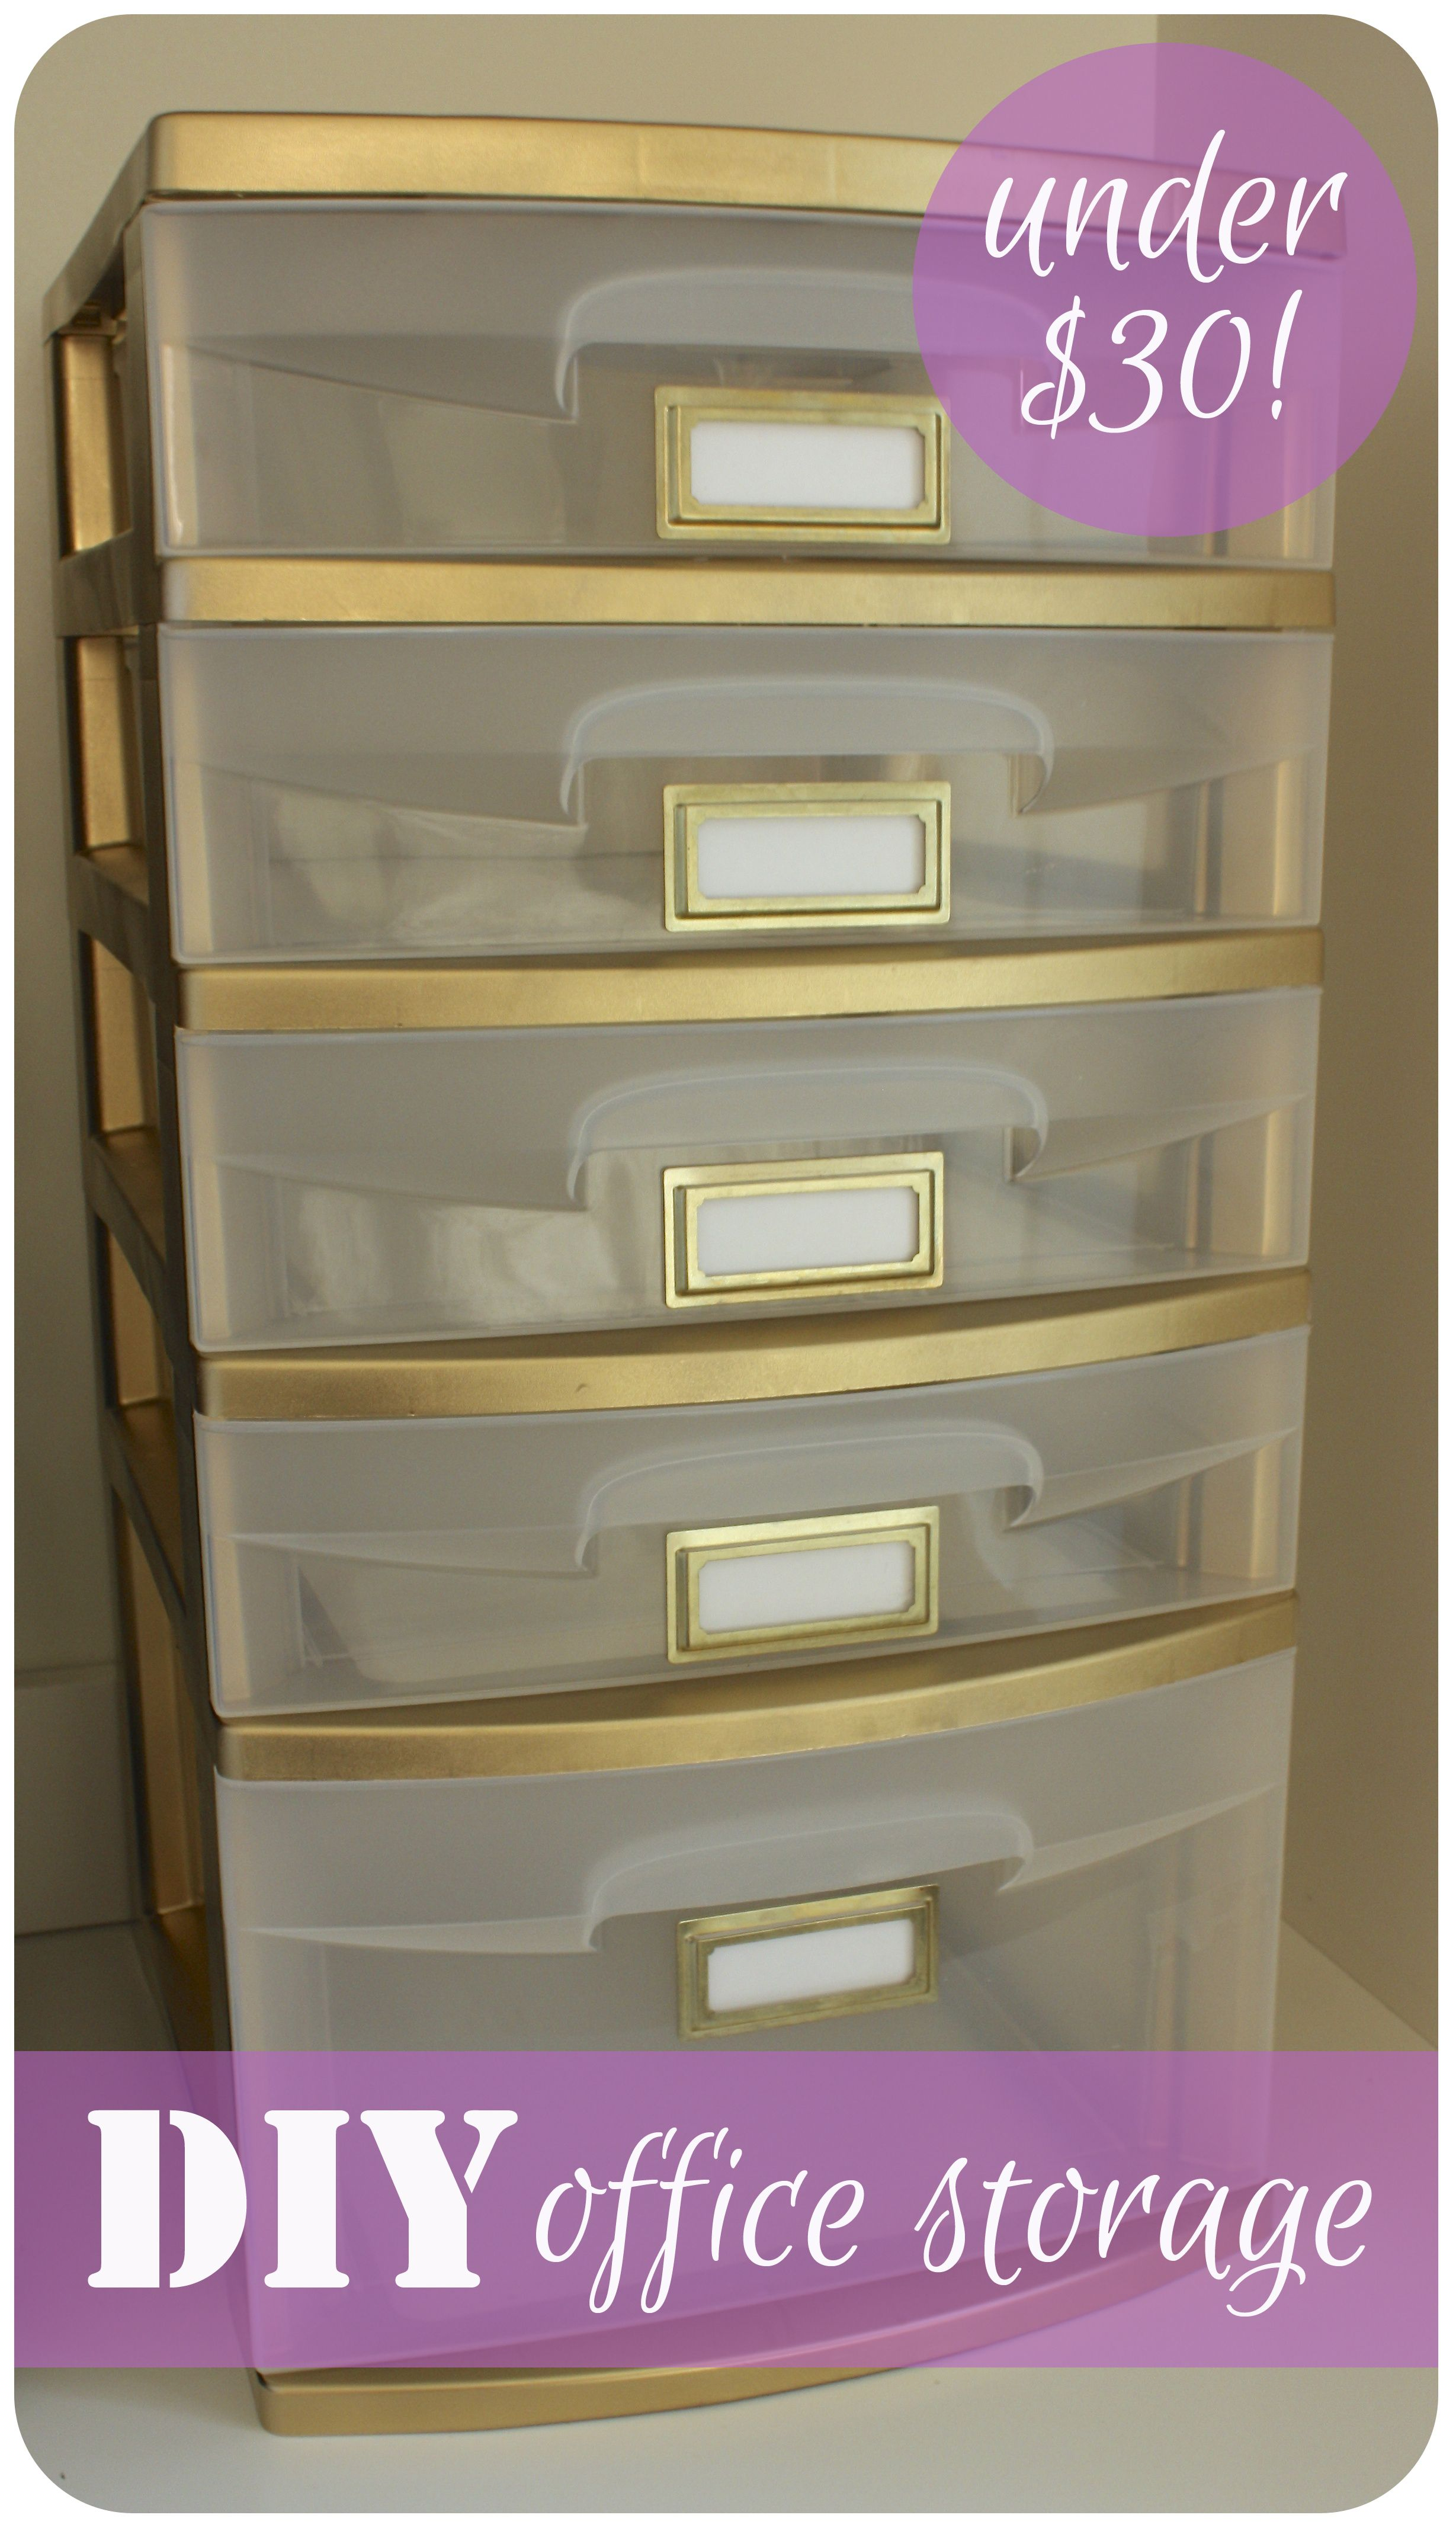 boxed drawer clothing home conditions storage jpg trumpet lockers with snacks terms plastic design finishing clothes drawers layers lock g boxes and box w put dormitory apply